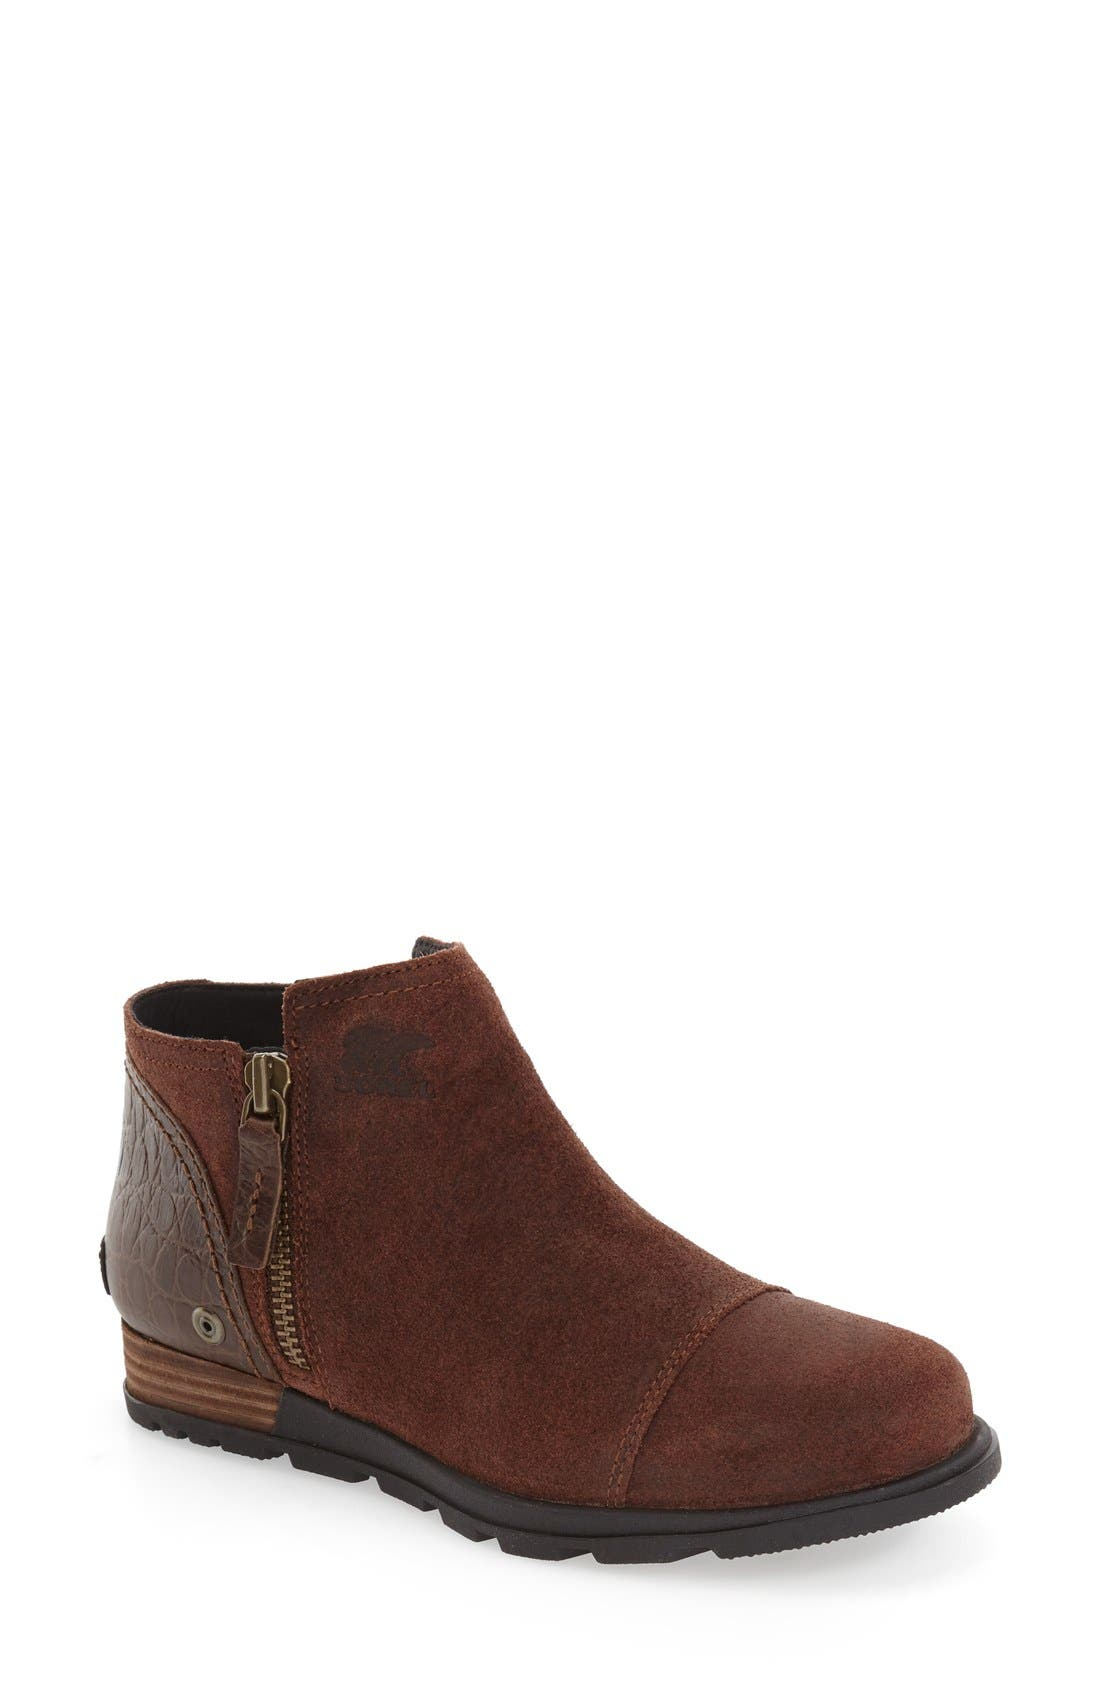 Alternate Image 1 Selected - SOREL 'Major Low' Bootie (Women)